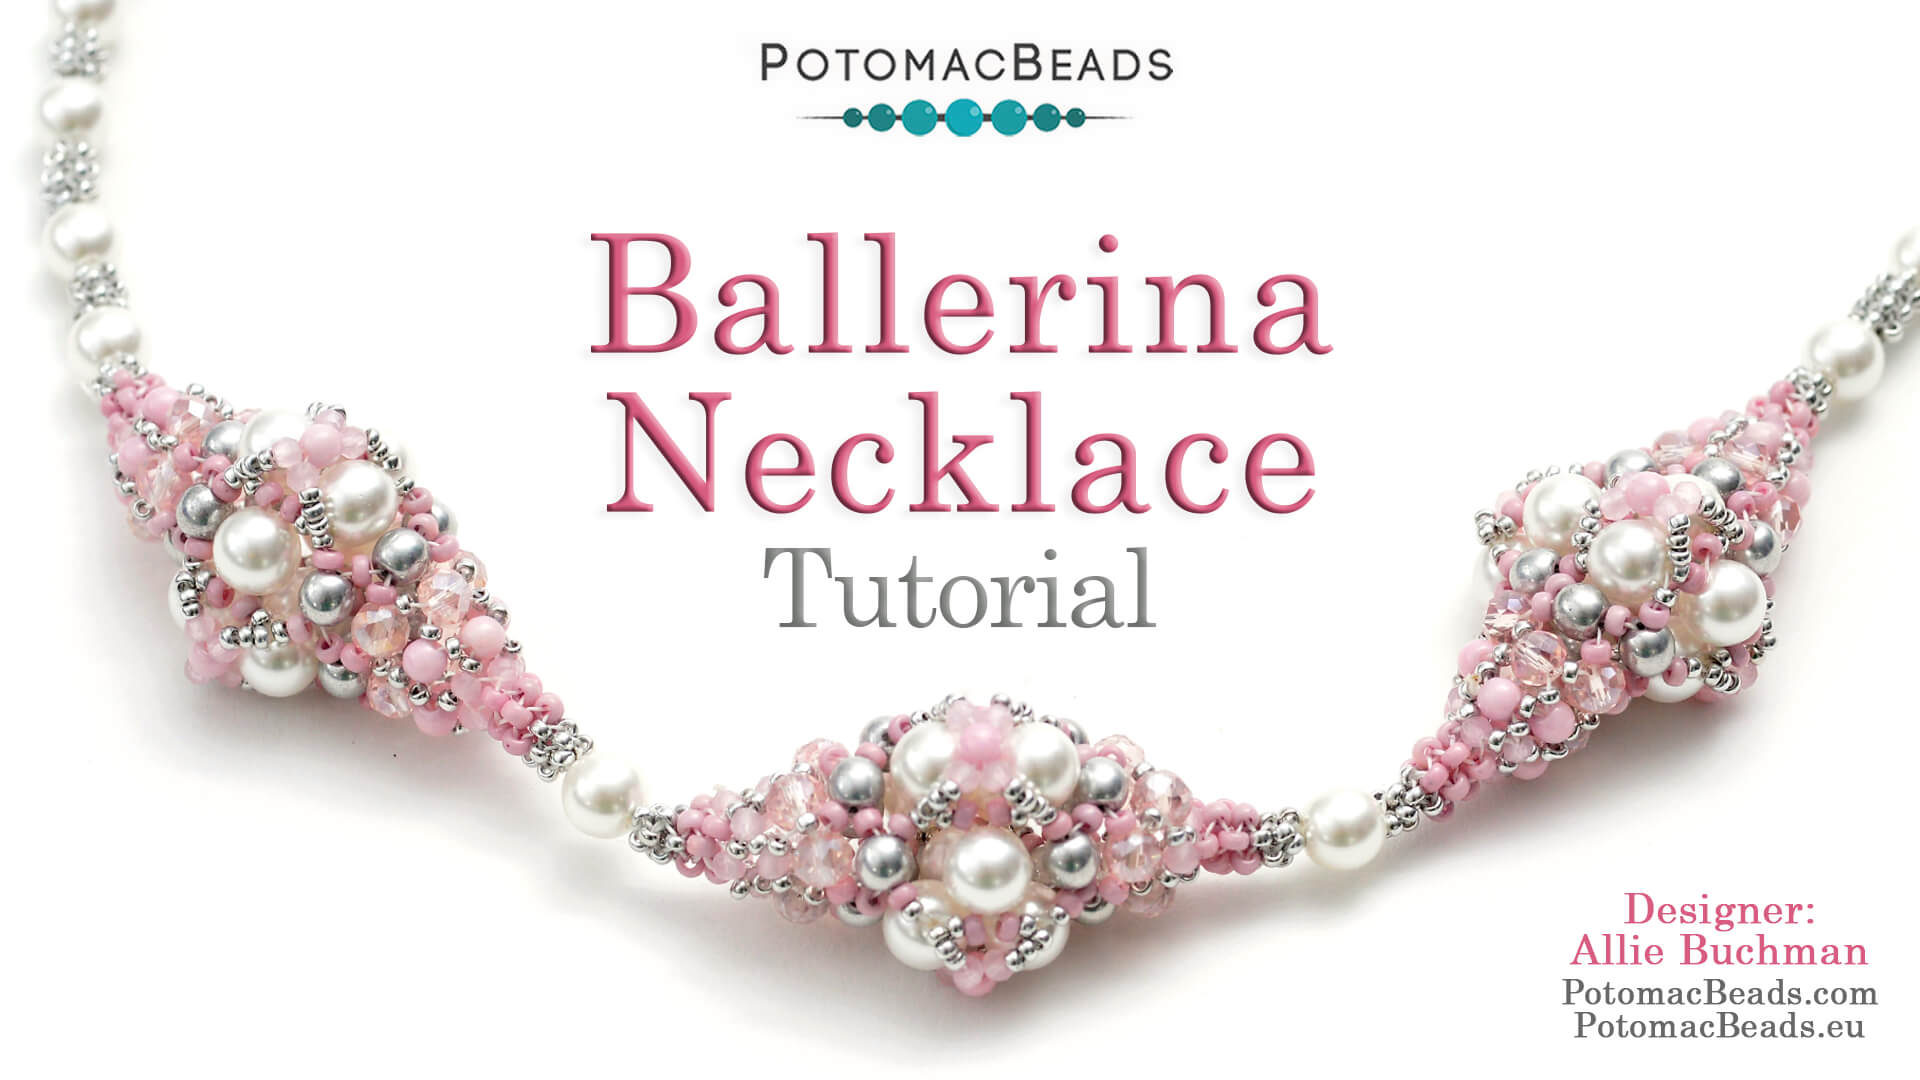 How to Bead Jewelry / Videos Sorted by Beads / Pearl Videos (Czech, Freshwater, Potomac Pearls) / Ballerina Necklace Tutorial